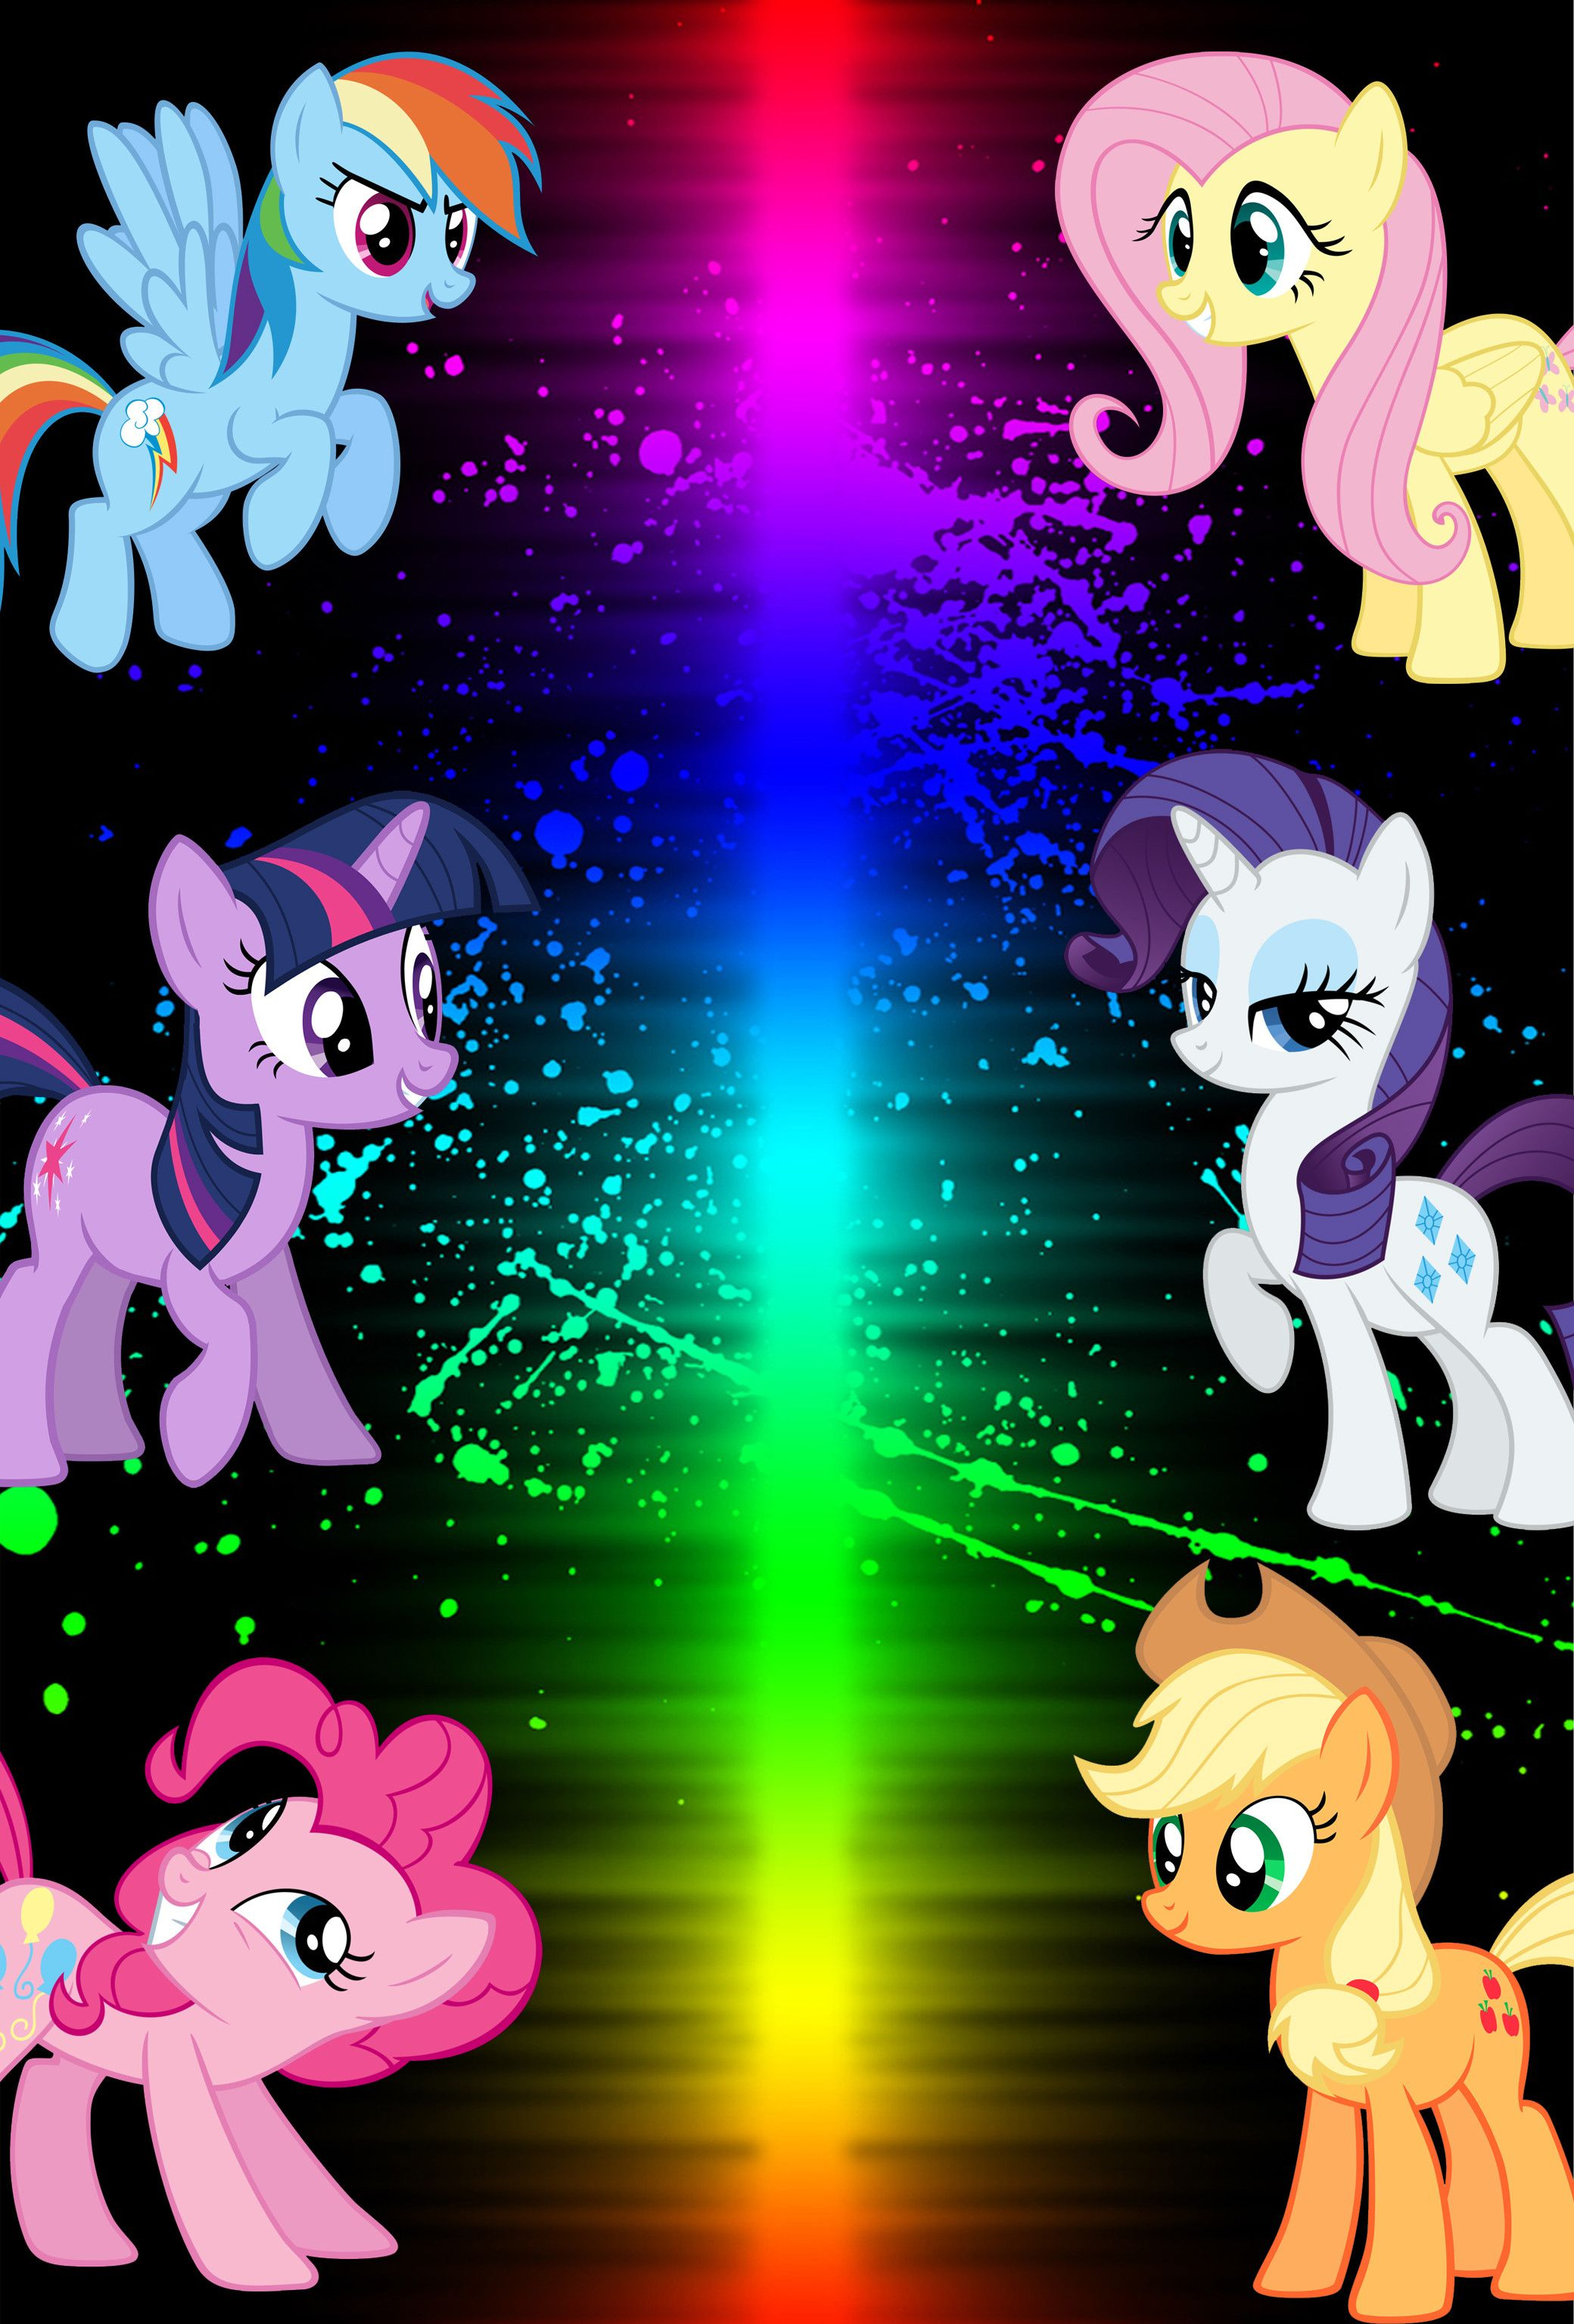 mlp wallpapers android - wallpaper cave